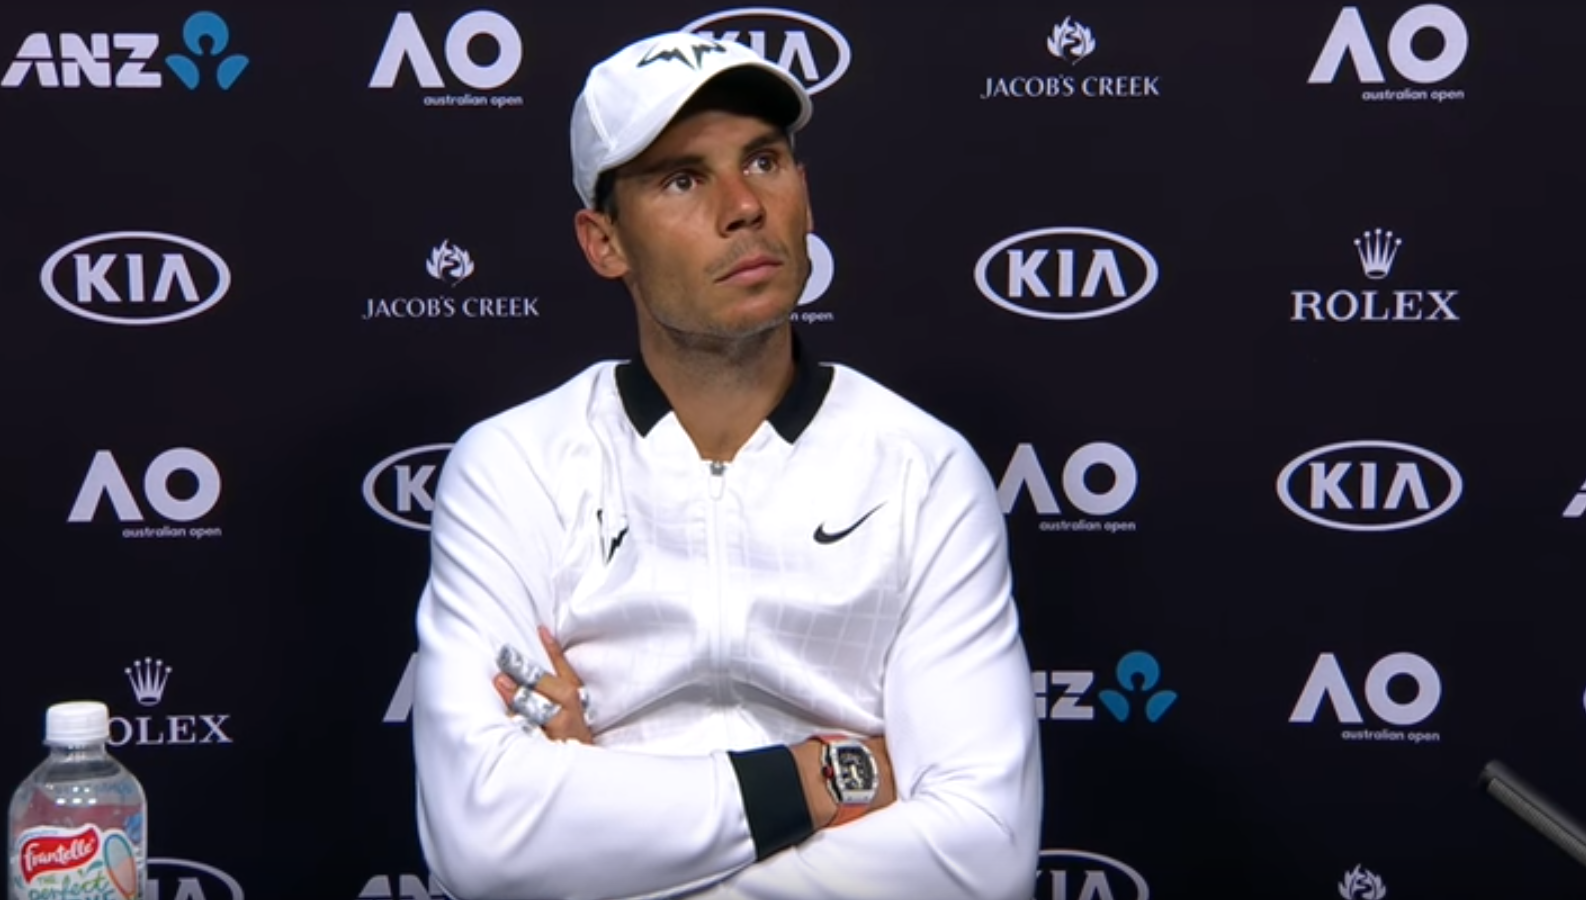 2017 Aus Open Press RM27-02 Rafa Nadal